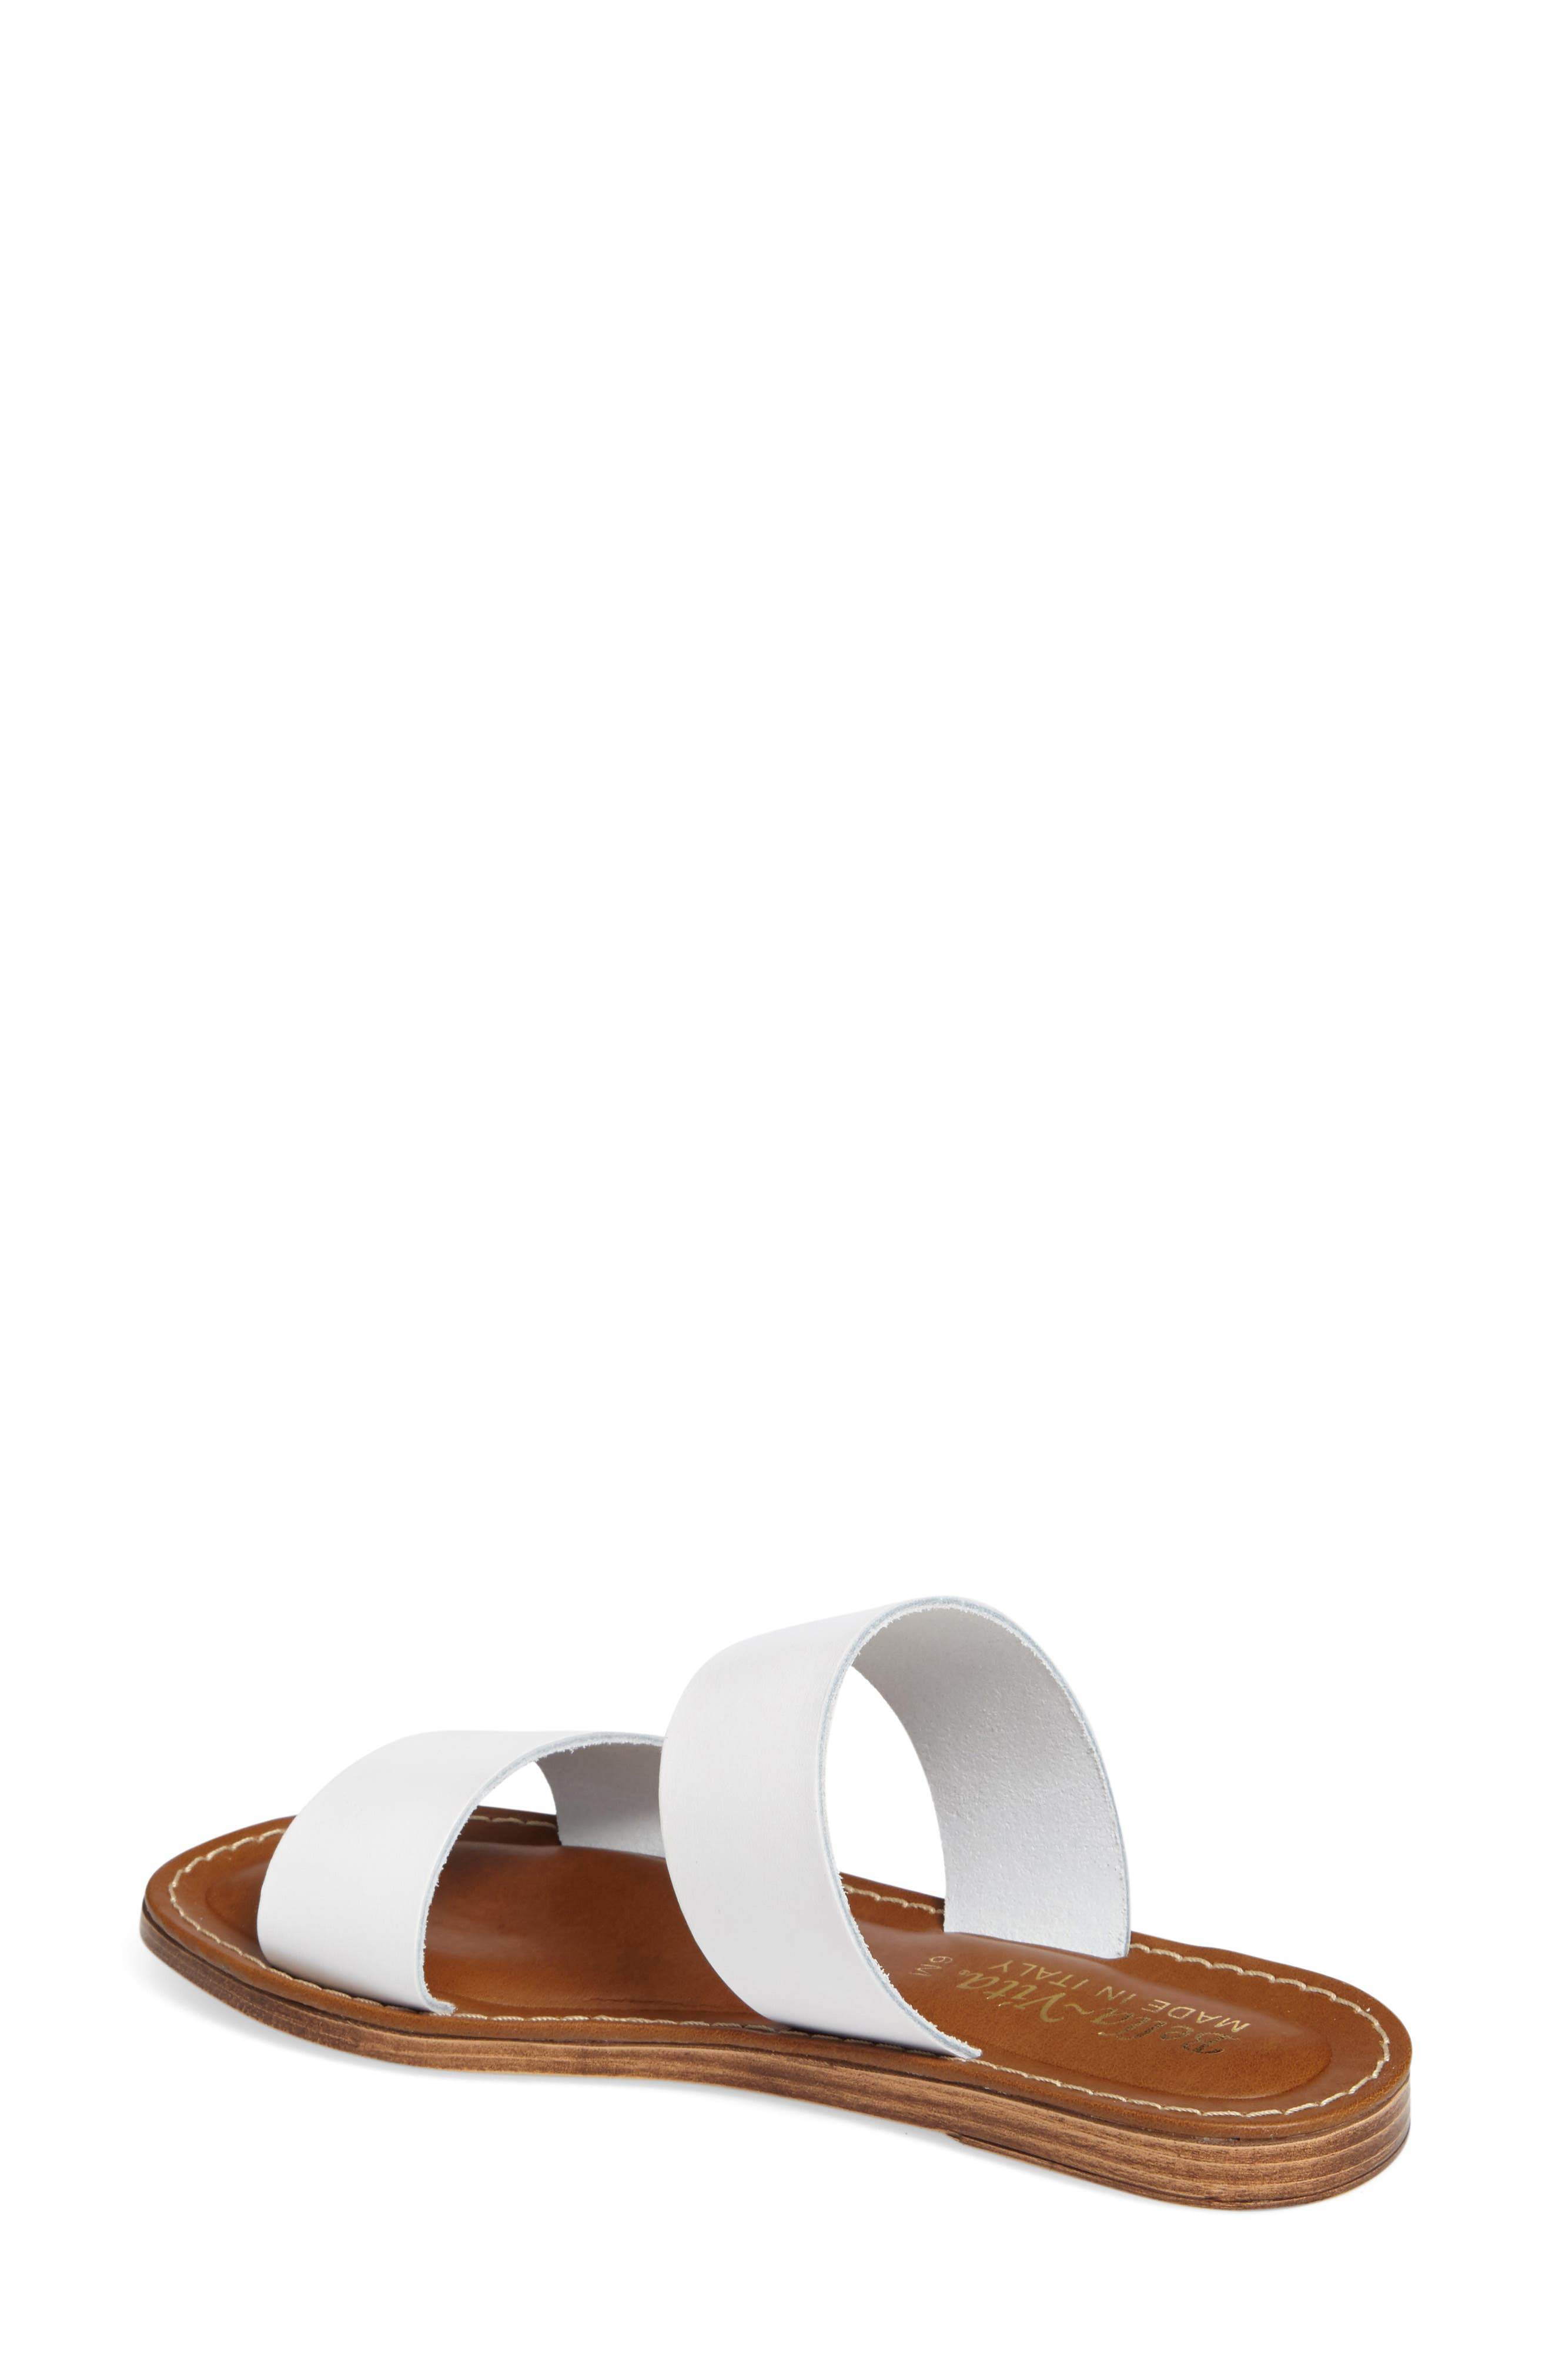 BELLA VITA, Imo Slide Sandal, Alternate thumbnail 2, color, WHITE LEATHER